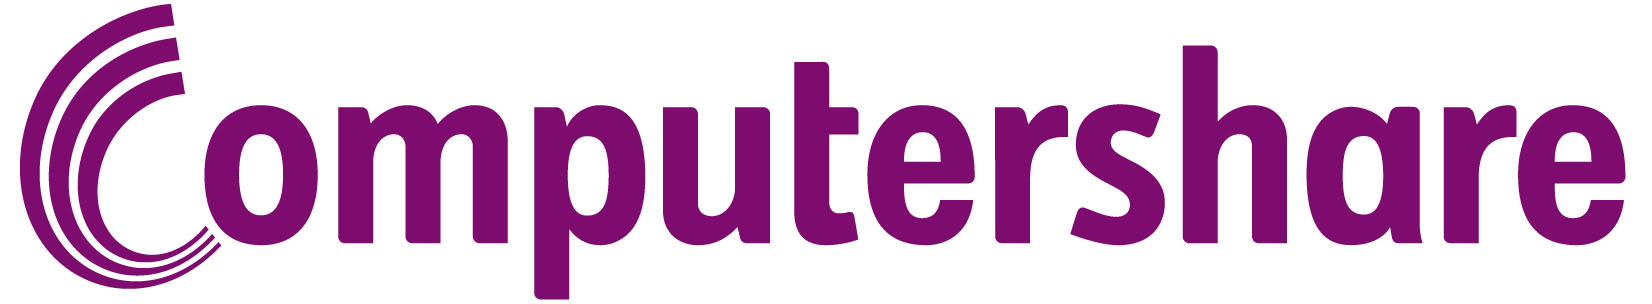 Computershare Logo Purple JPG